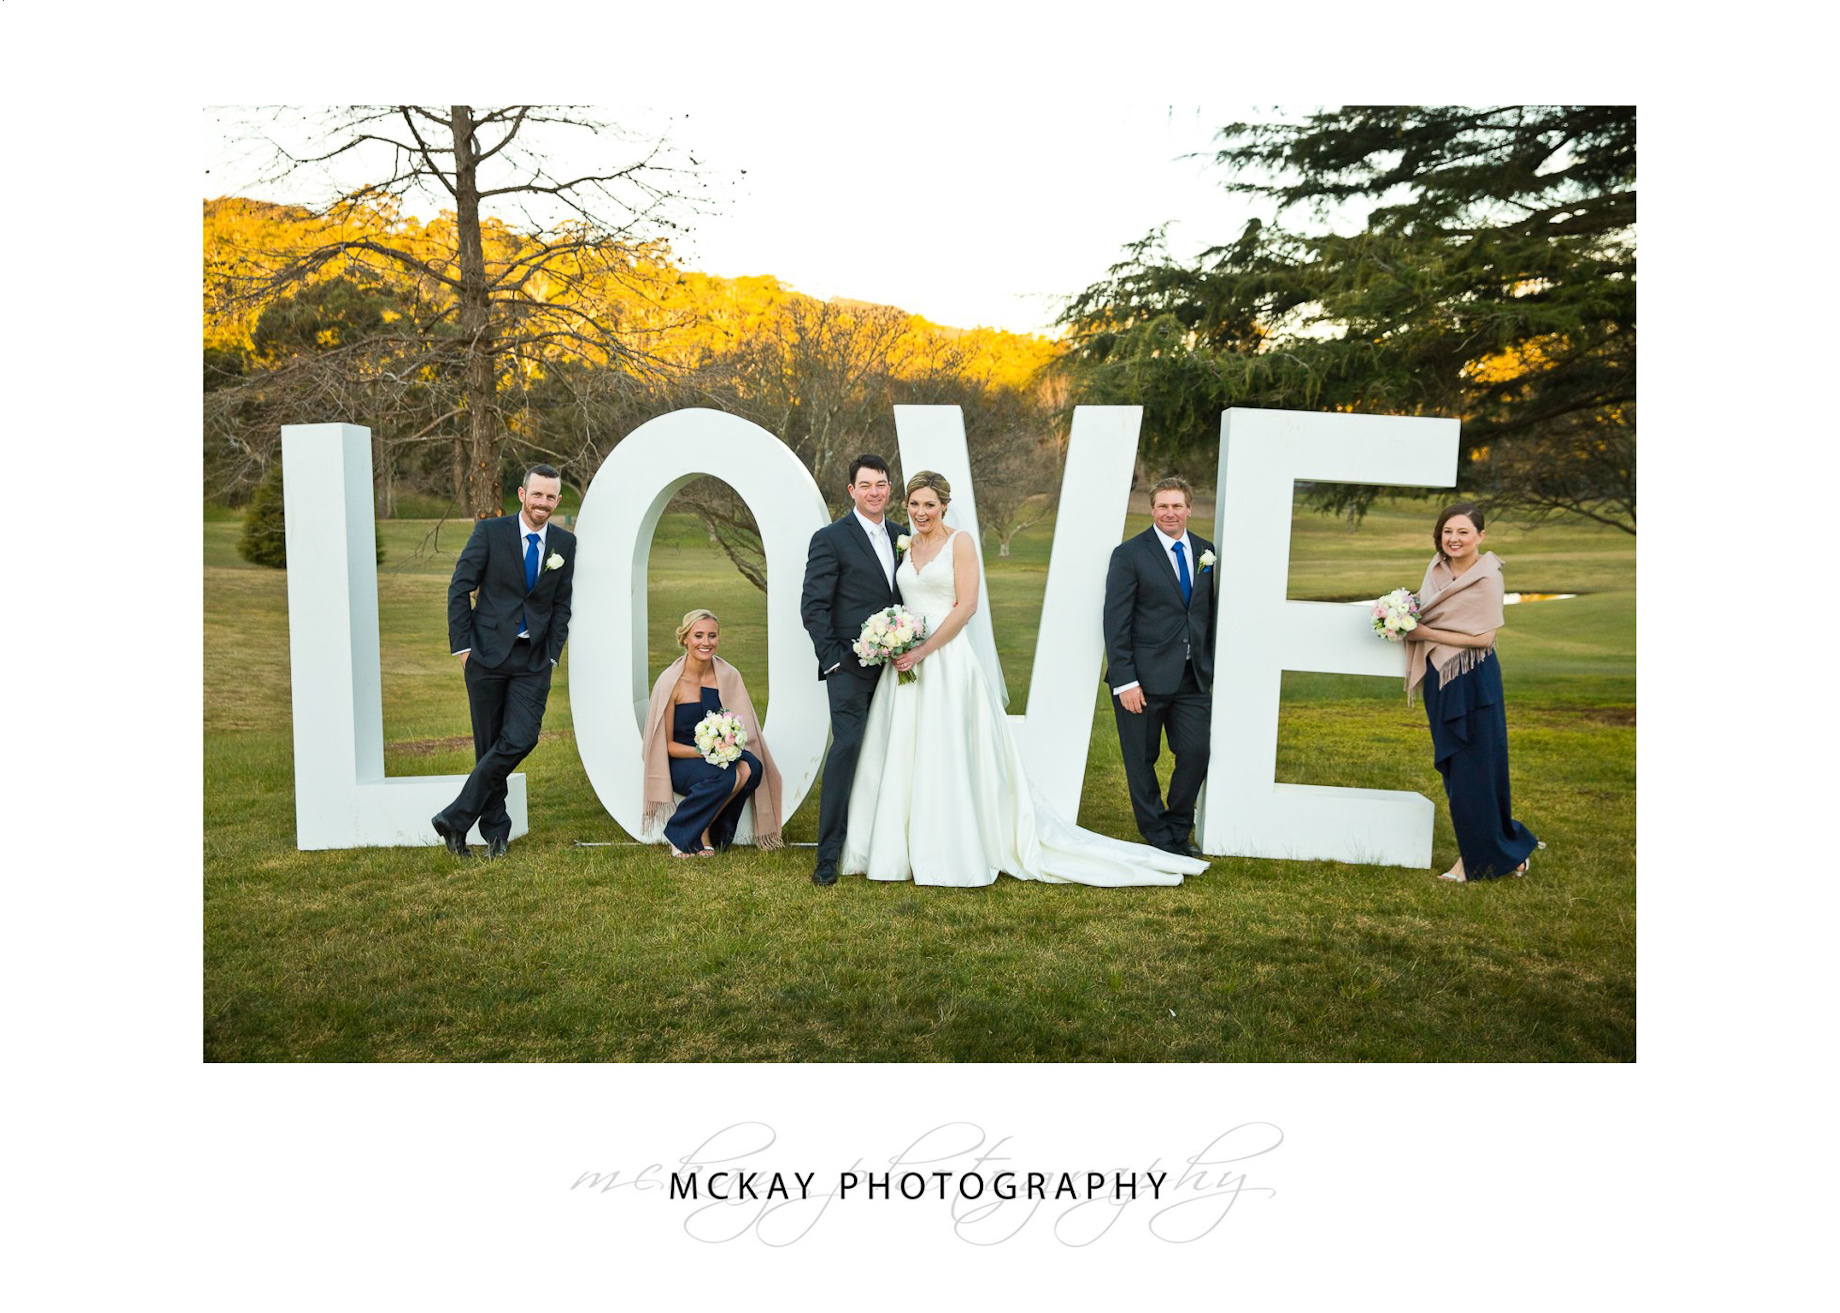 Bridal party and LOVE sign letters